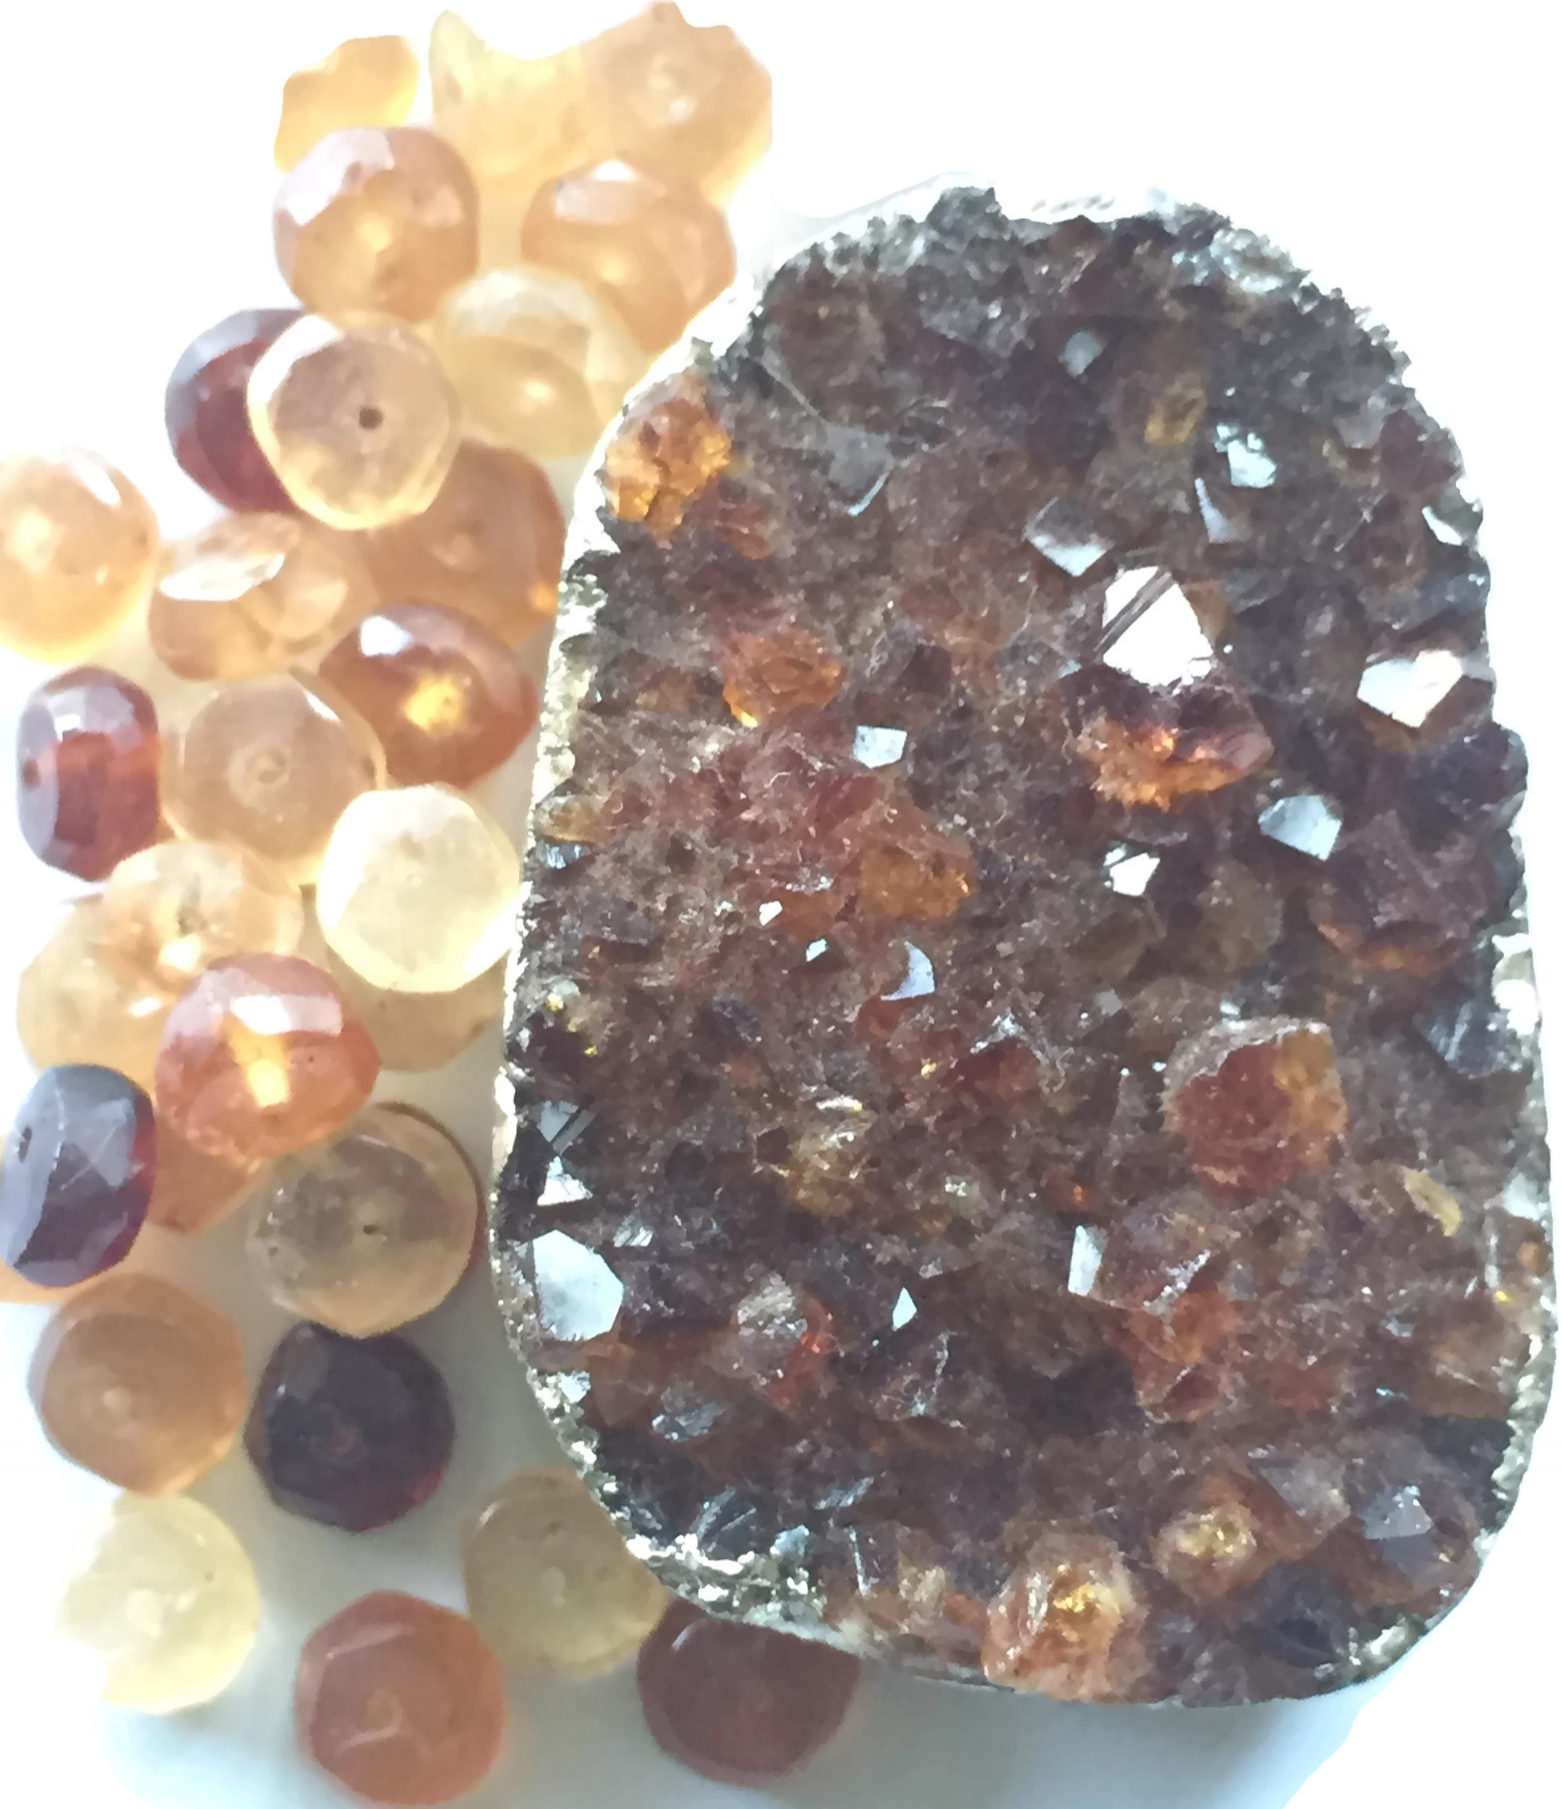 Rahu's gems protection on travels + reduces mental agony + creating clarity in the mind + encourages a mellow vibe - Gem: Hessonite Garnet